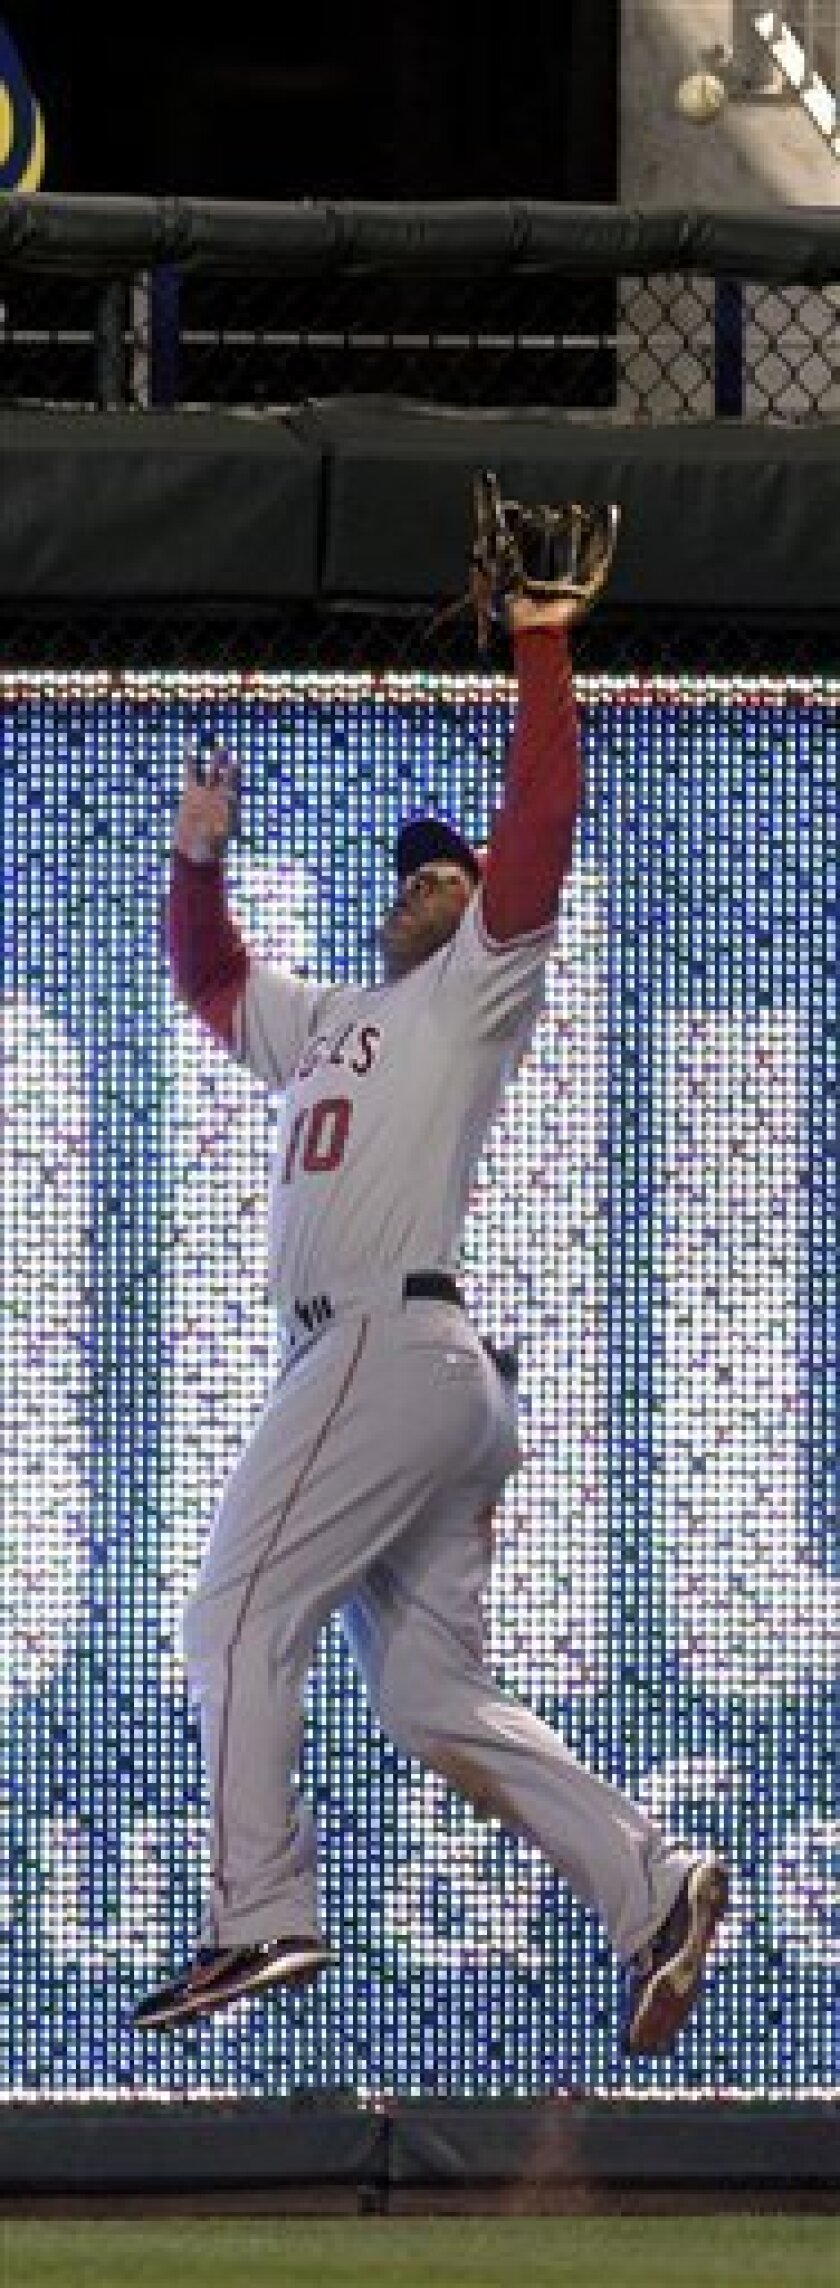 Los Angeles Angels left fielder Vernon Wells jumps to catch a fly ball hit by Kansas City Royals' Jeff Francoeur during the sixth inning of an MLB baseball game Friday, April 1, 2011 in Kansas City, Mo. (AP Photo/Charlie Riedel)